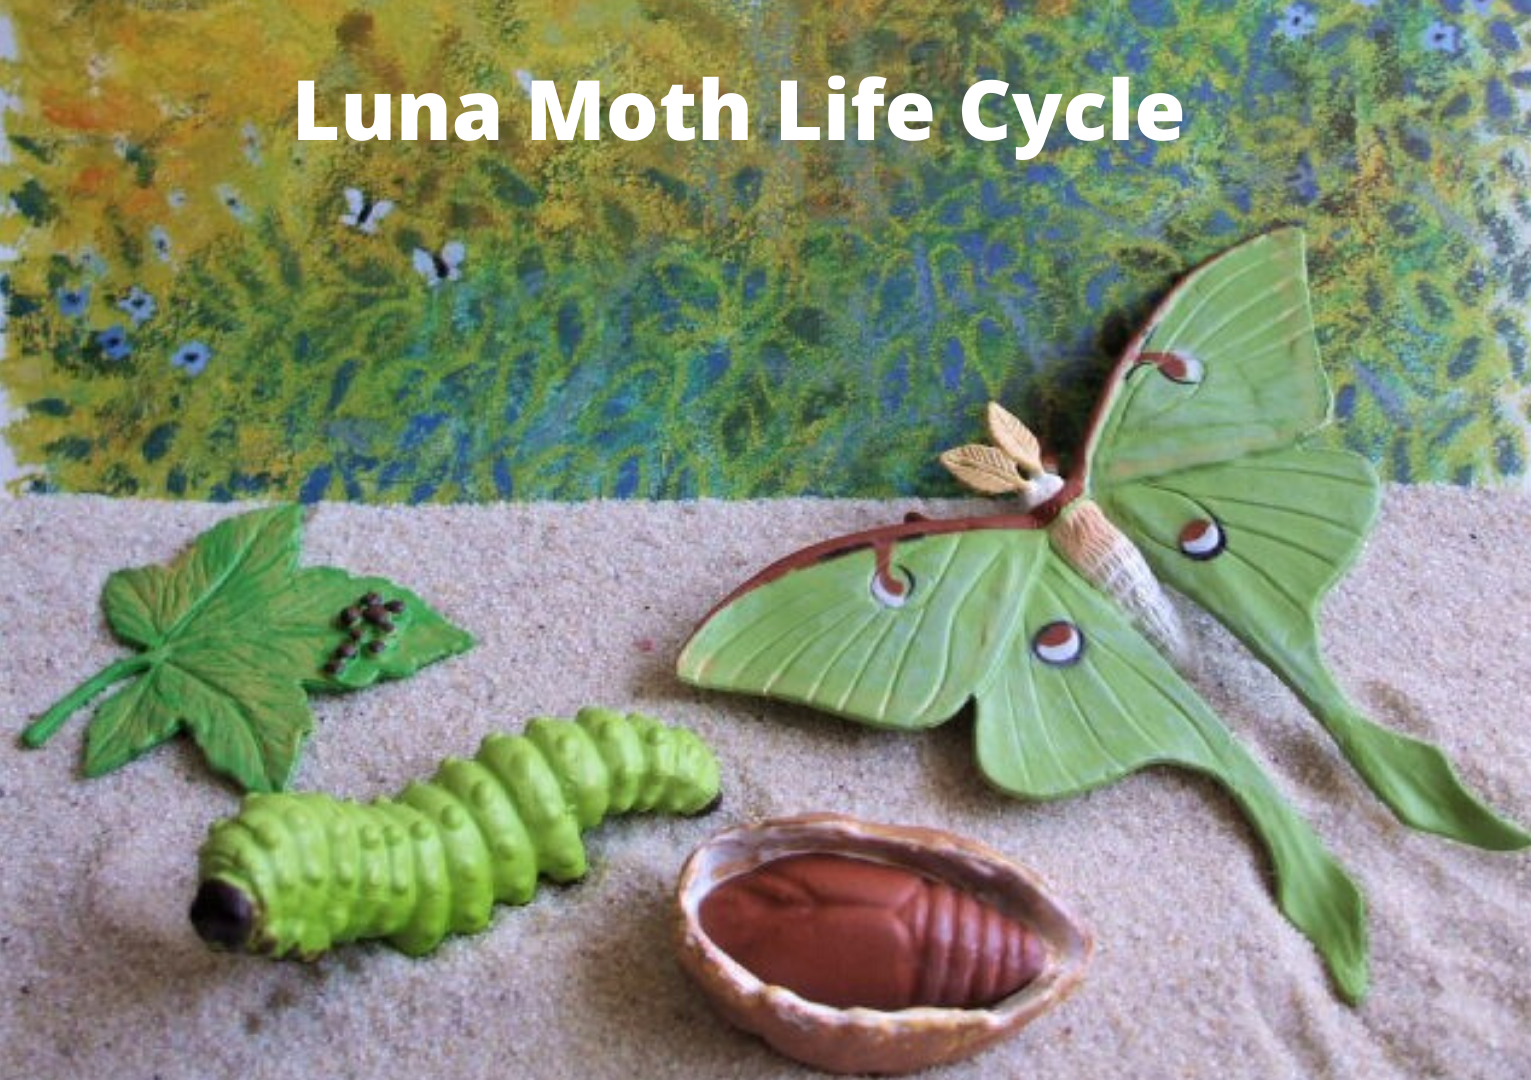 Luna Moth Life Cycle